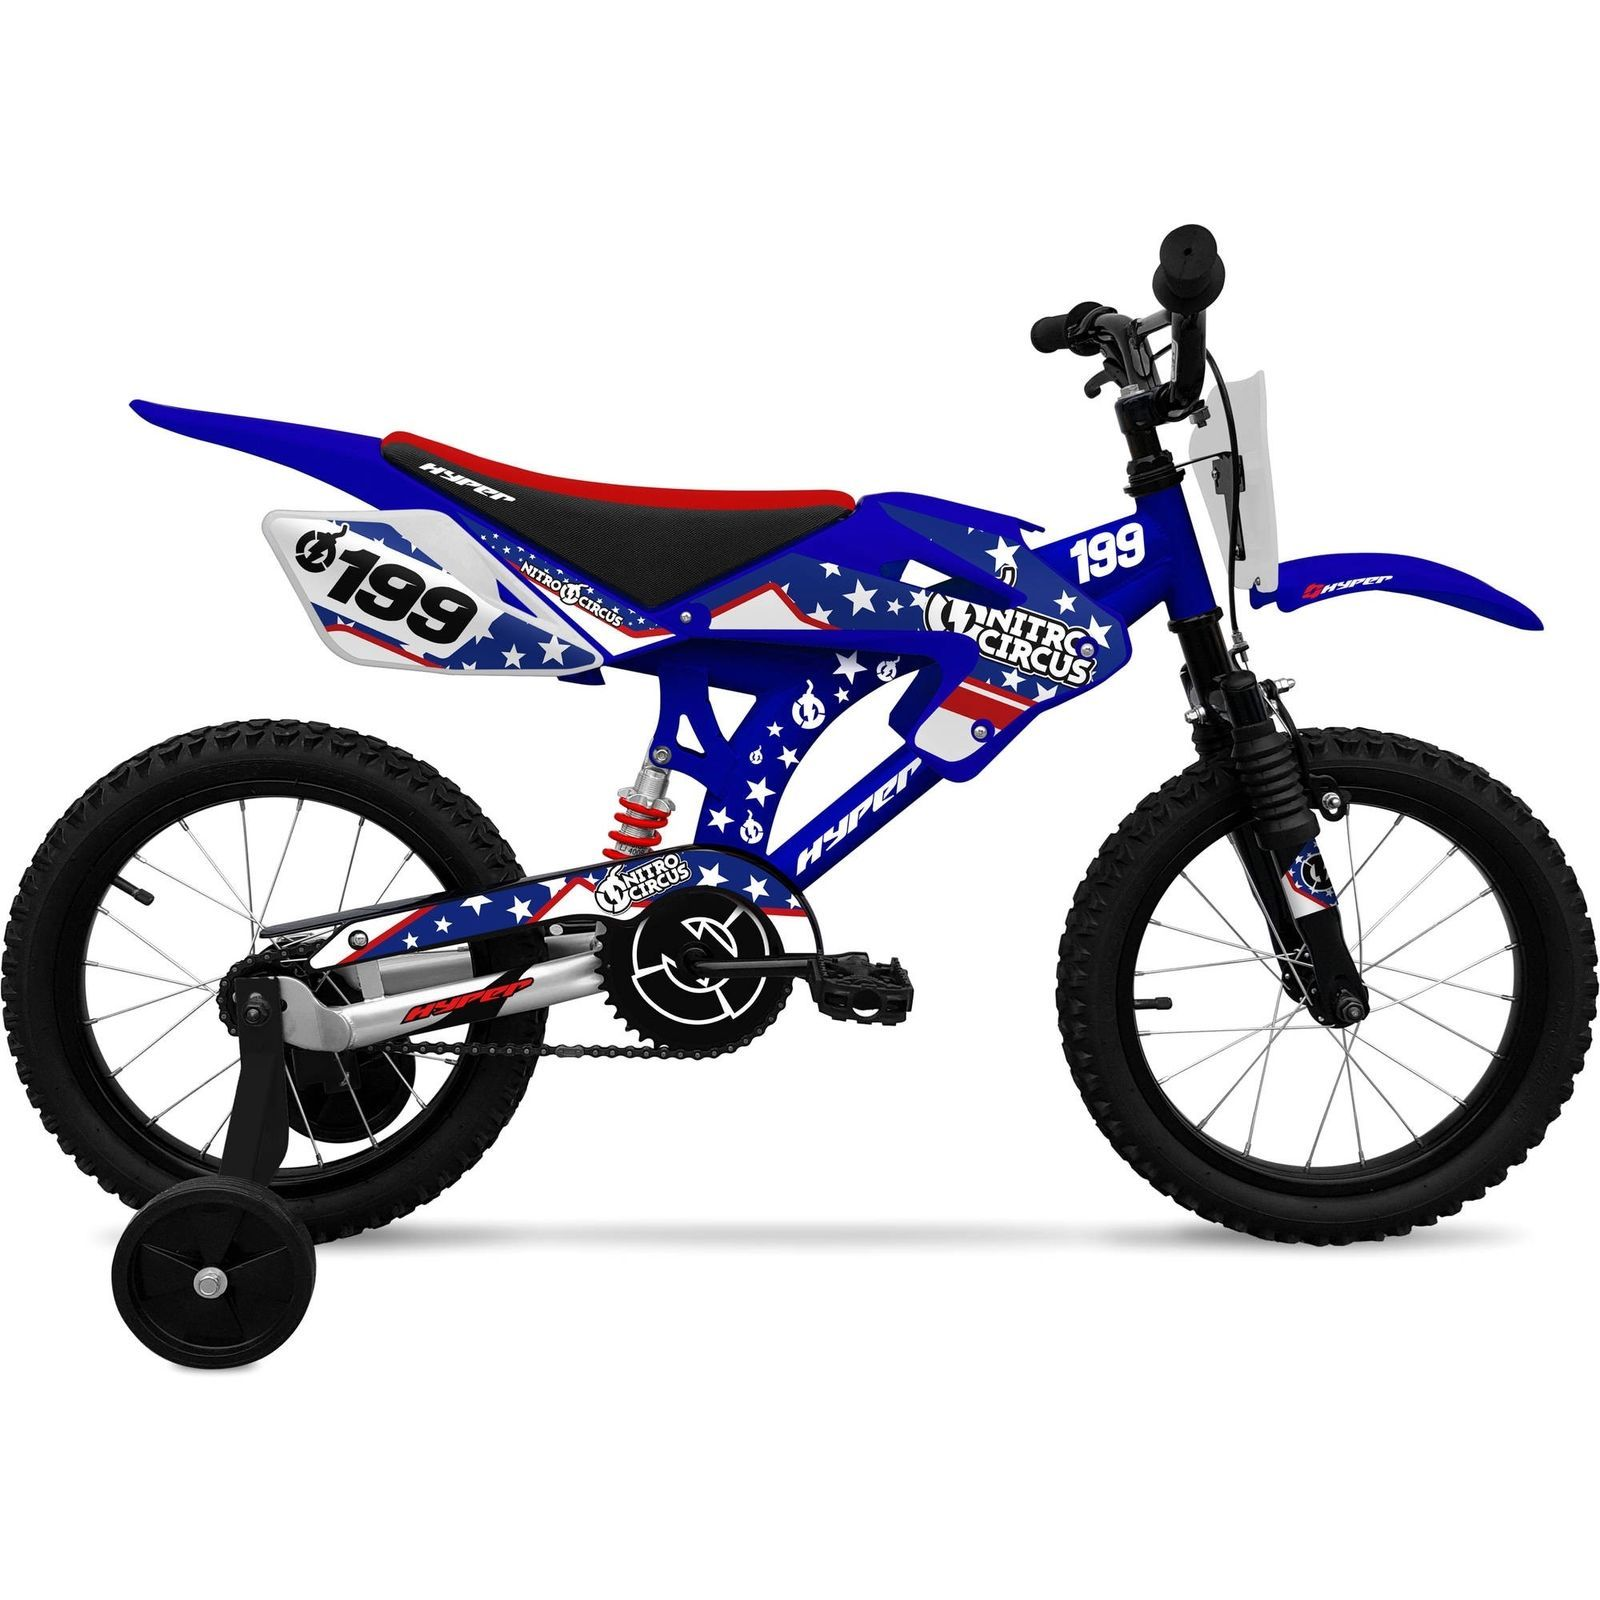 Boys Hyper 16 Nitro Circus Motobike Kids Bike Blue With Training Wheels 690995302113 Ebay Kids Bike Nitro Circus Bike With Training Wheels